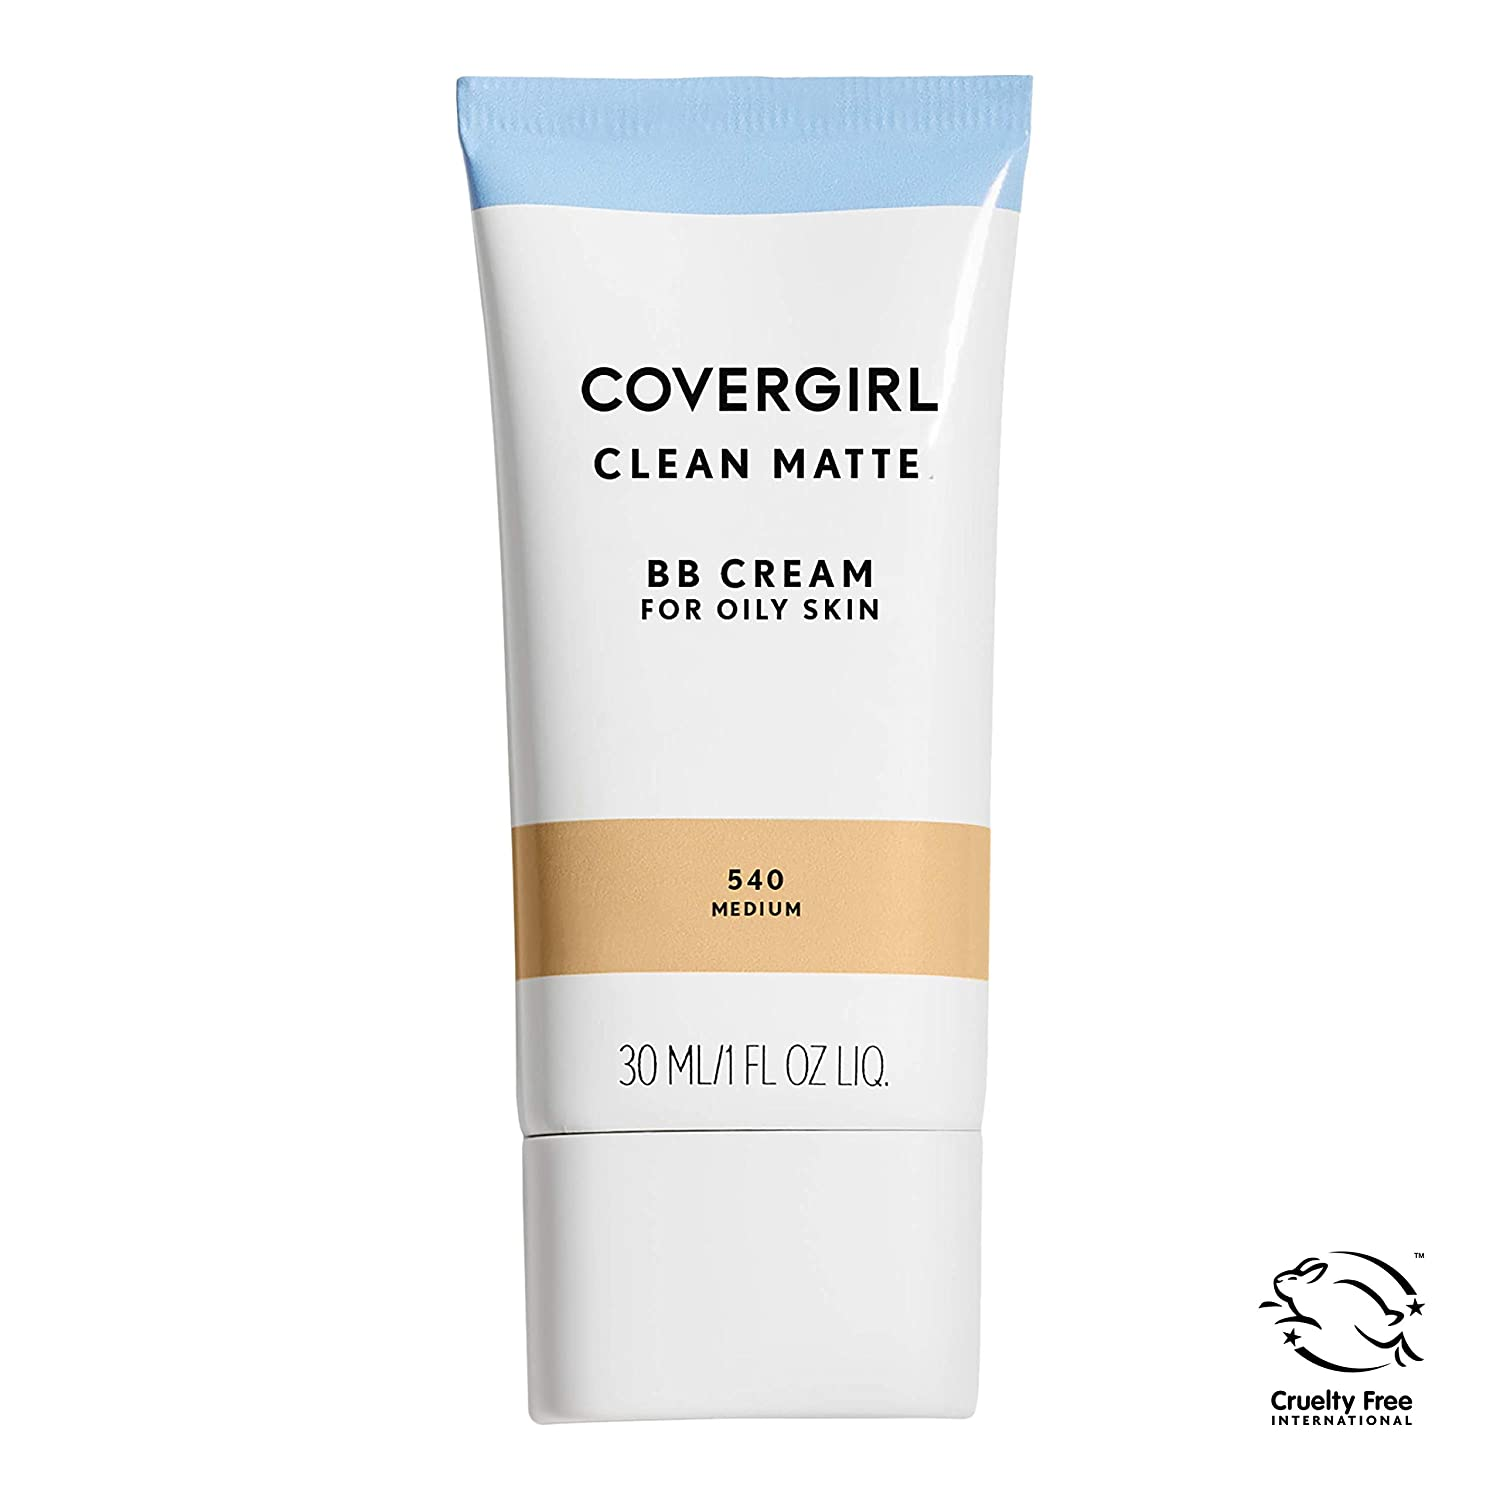 COVERGIRL Clean Matte BB Cream Medium 540 For Oily Skin, (packaging may vary) - 1 Fl Oz (1 Count)